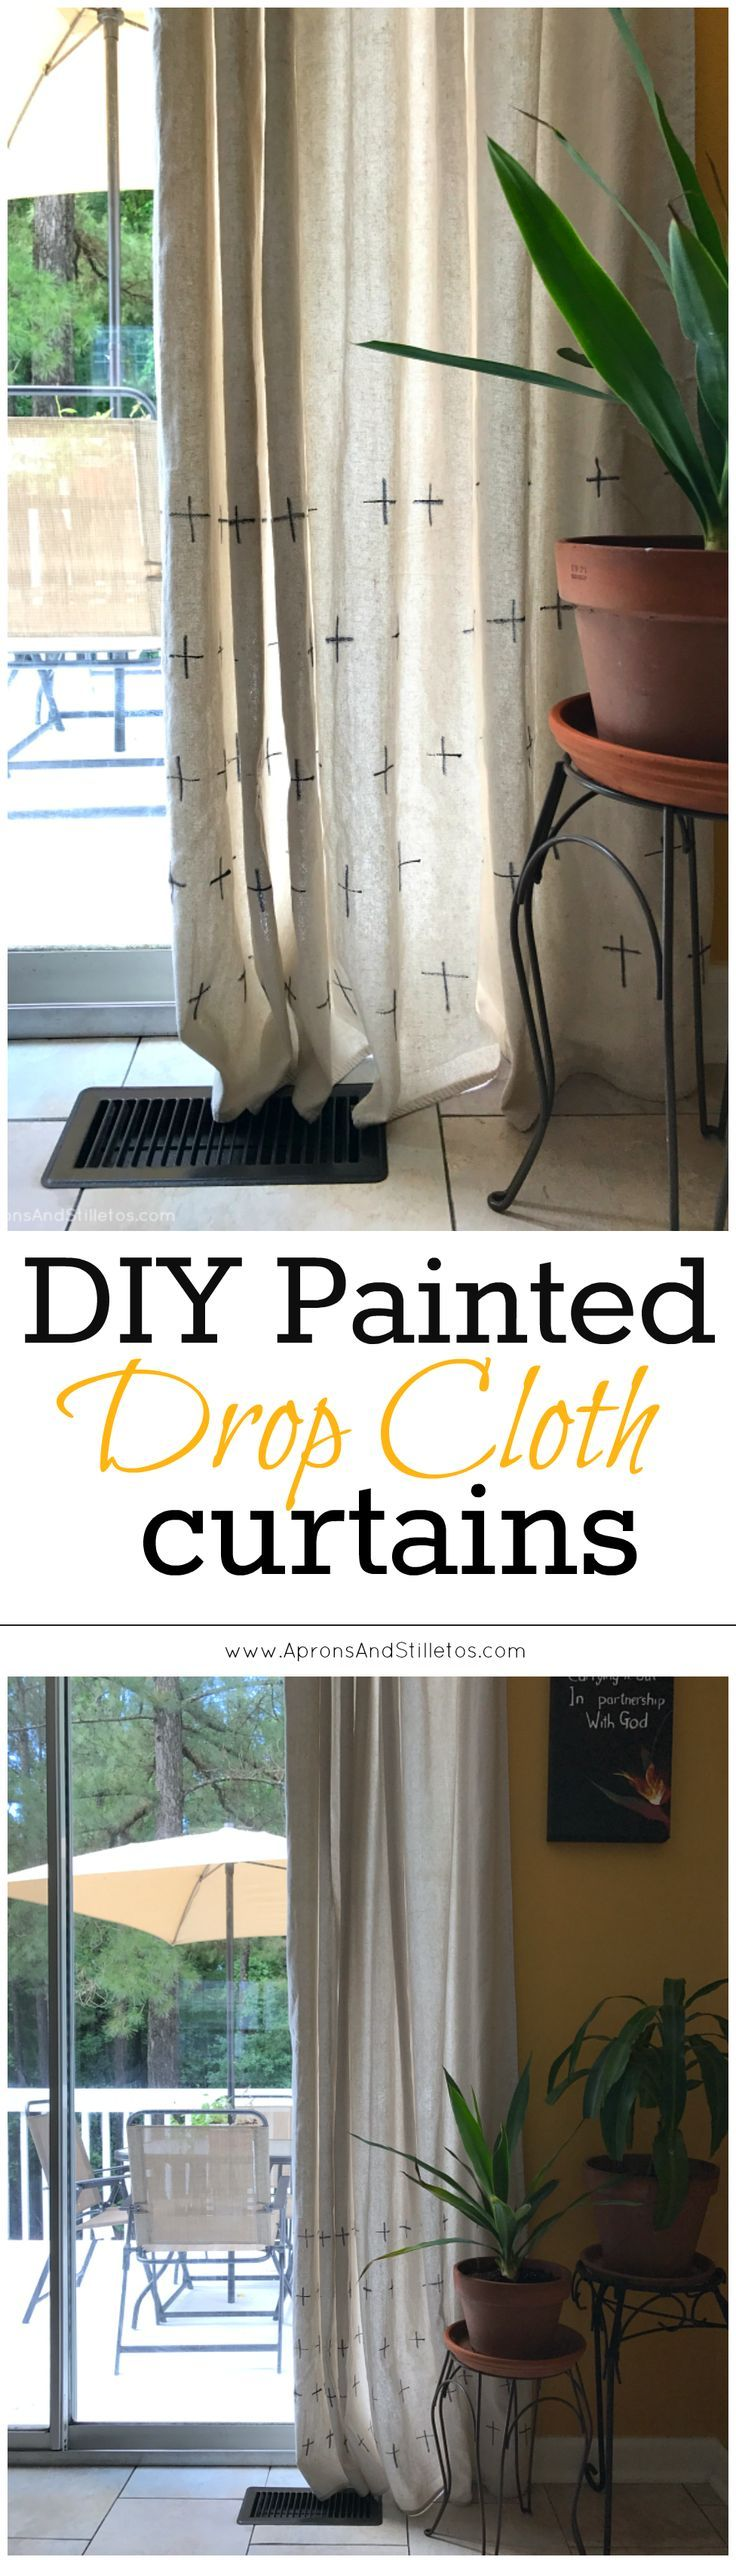 Drop Cloth Curtains Tutorial The 25 Best Drop Cloth Curtains Ideas On Pinterest Drop Cloth